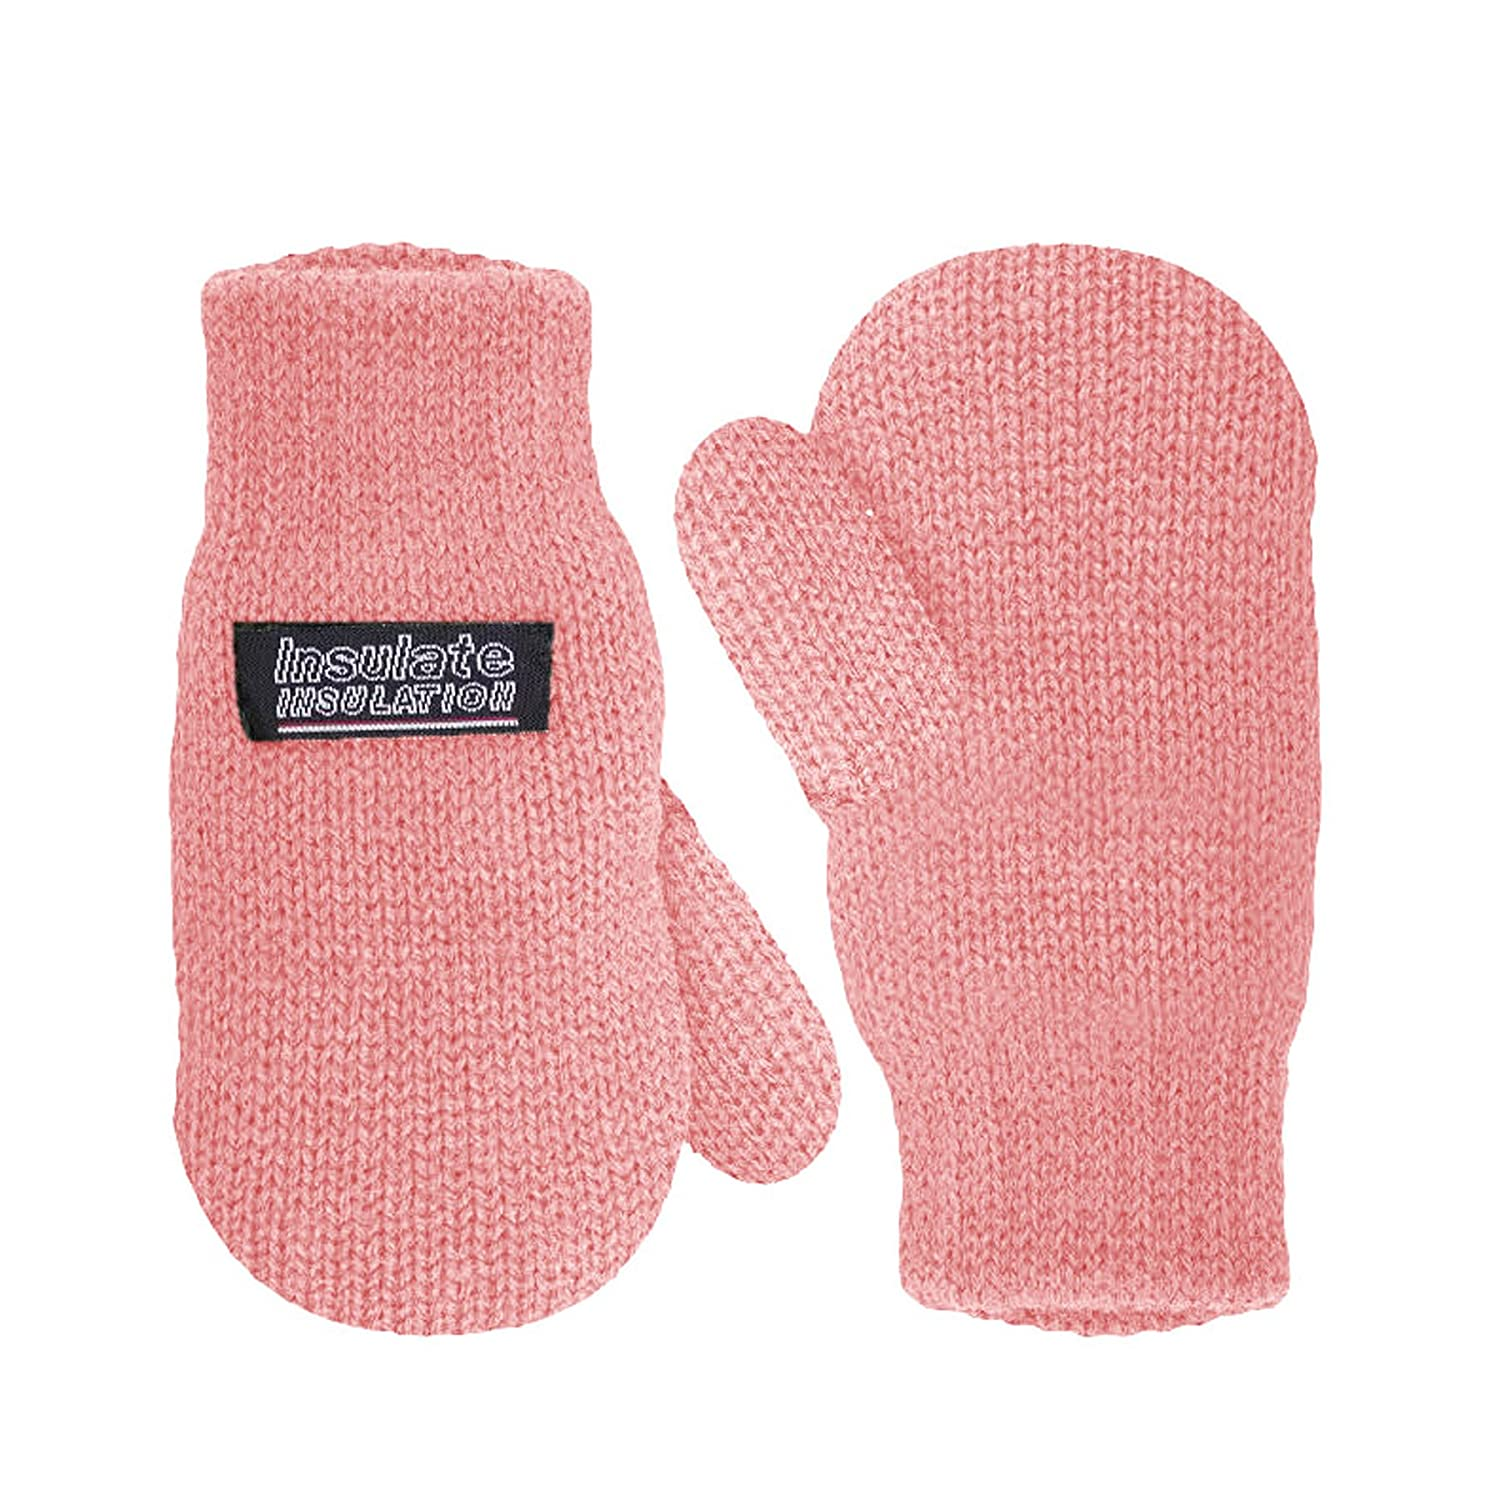 SANREMO Unisex Kids Toddler Knitted Fleece Lined Warm Winter Mittens